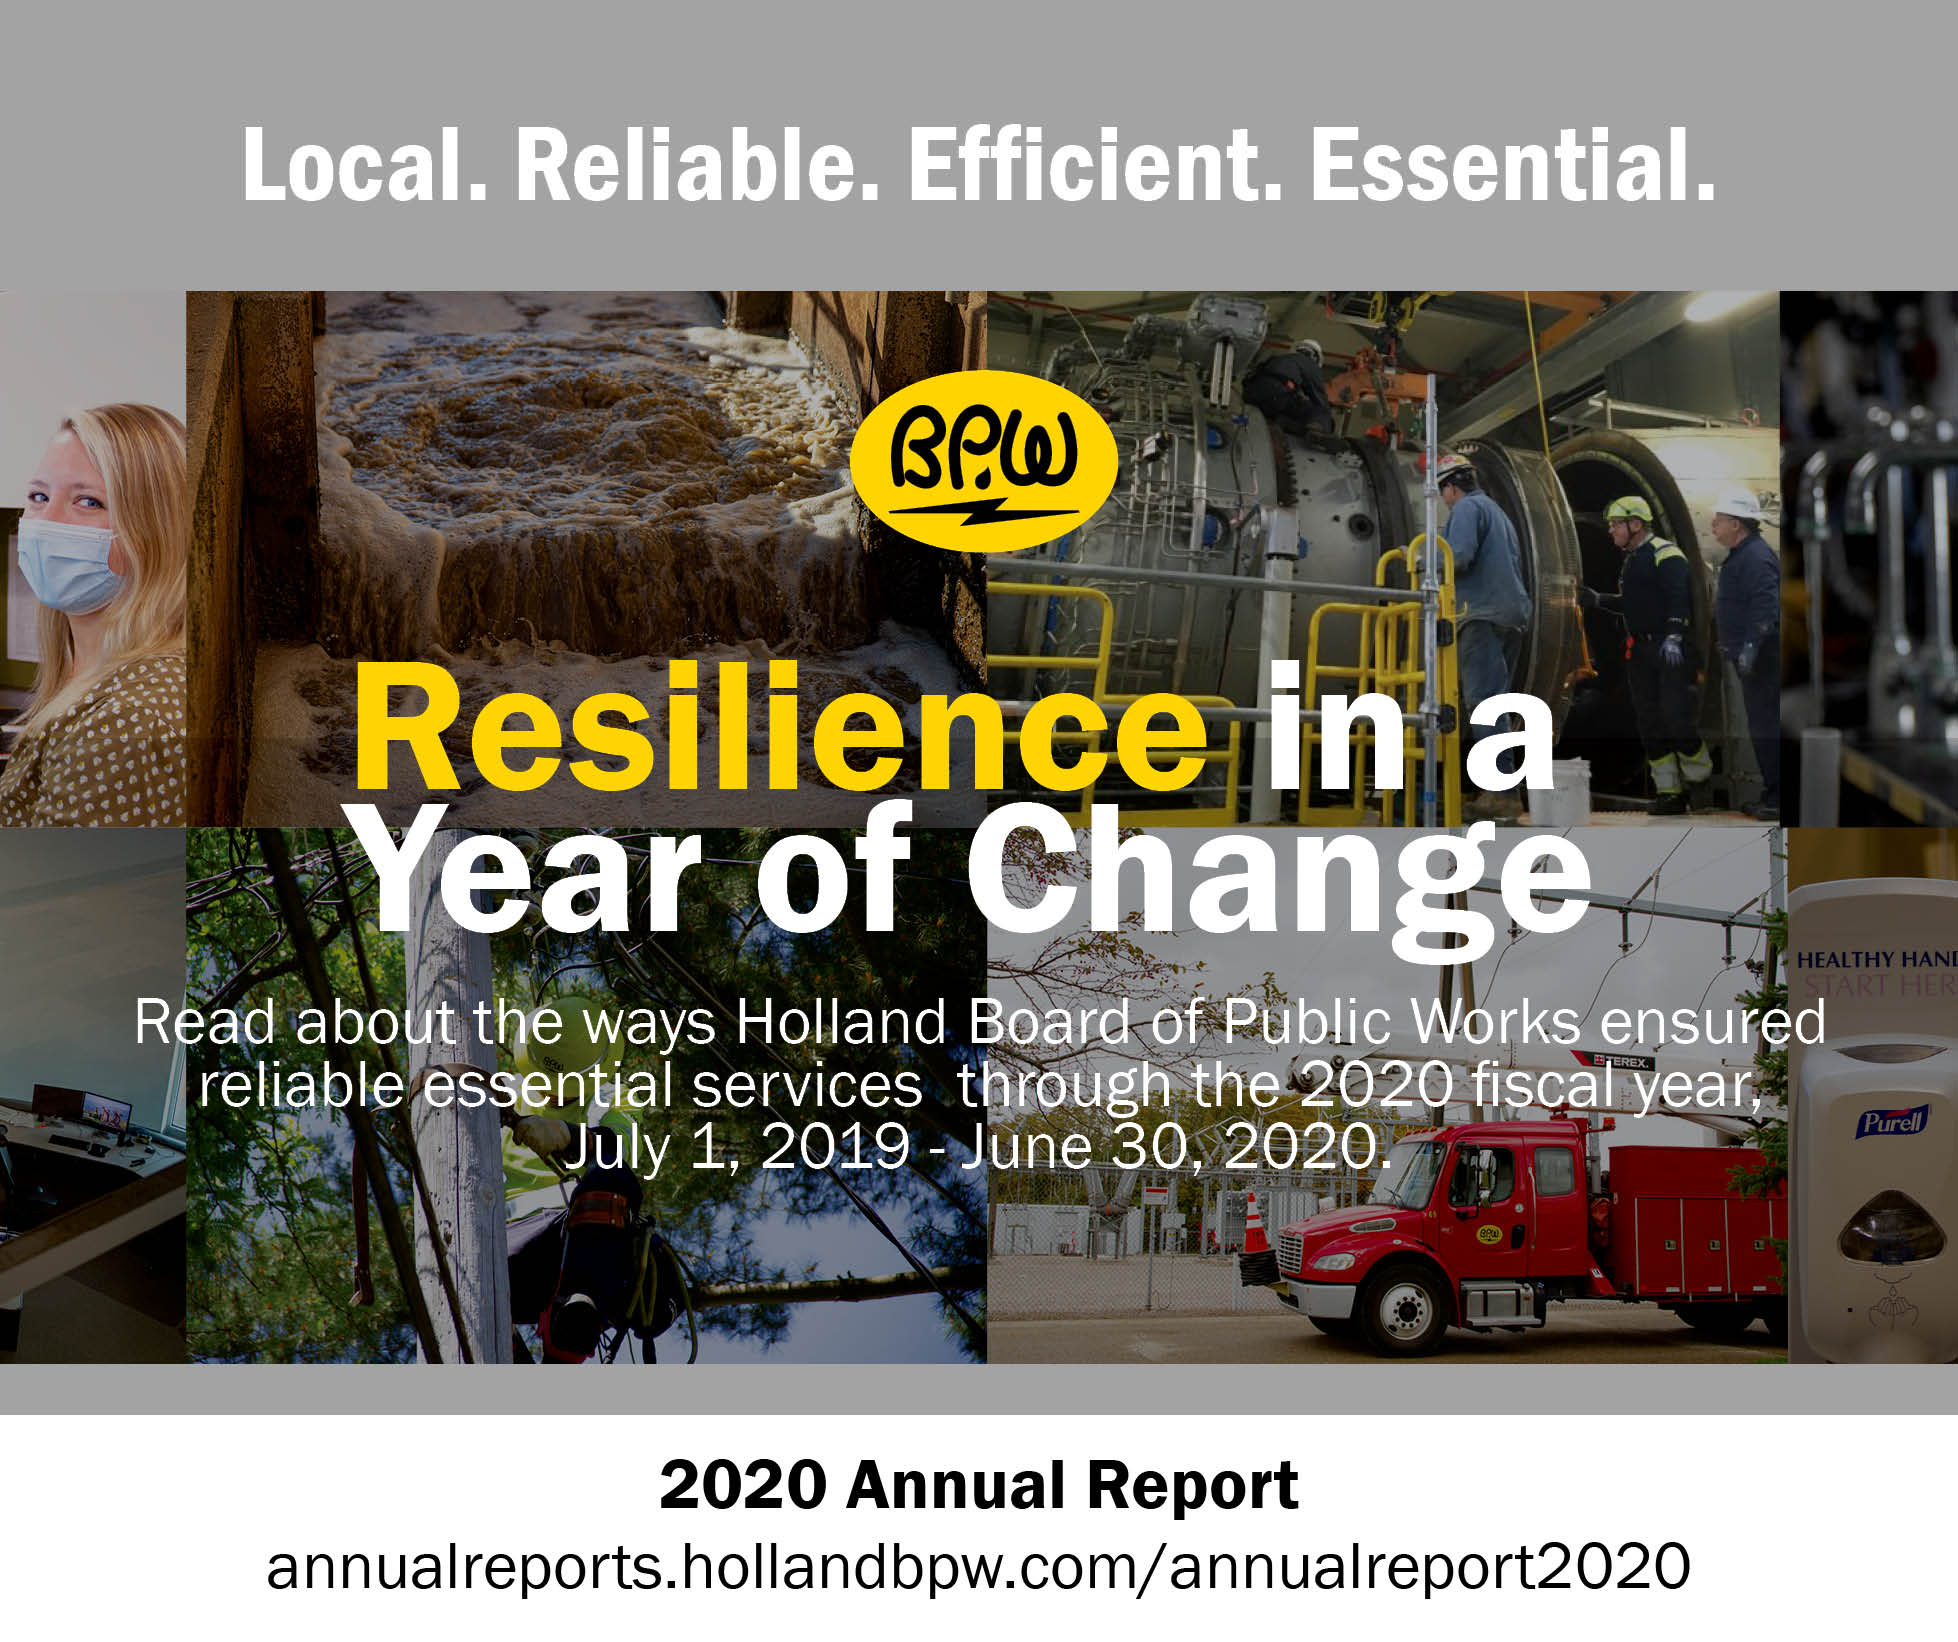 holland bpw annual report available at annualreports.hollandbpw.com/annualreport2020